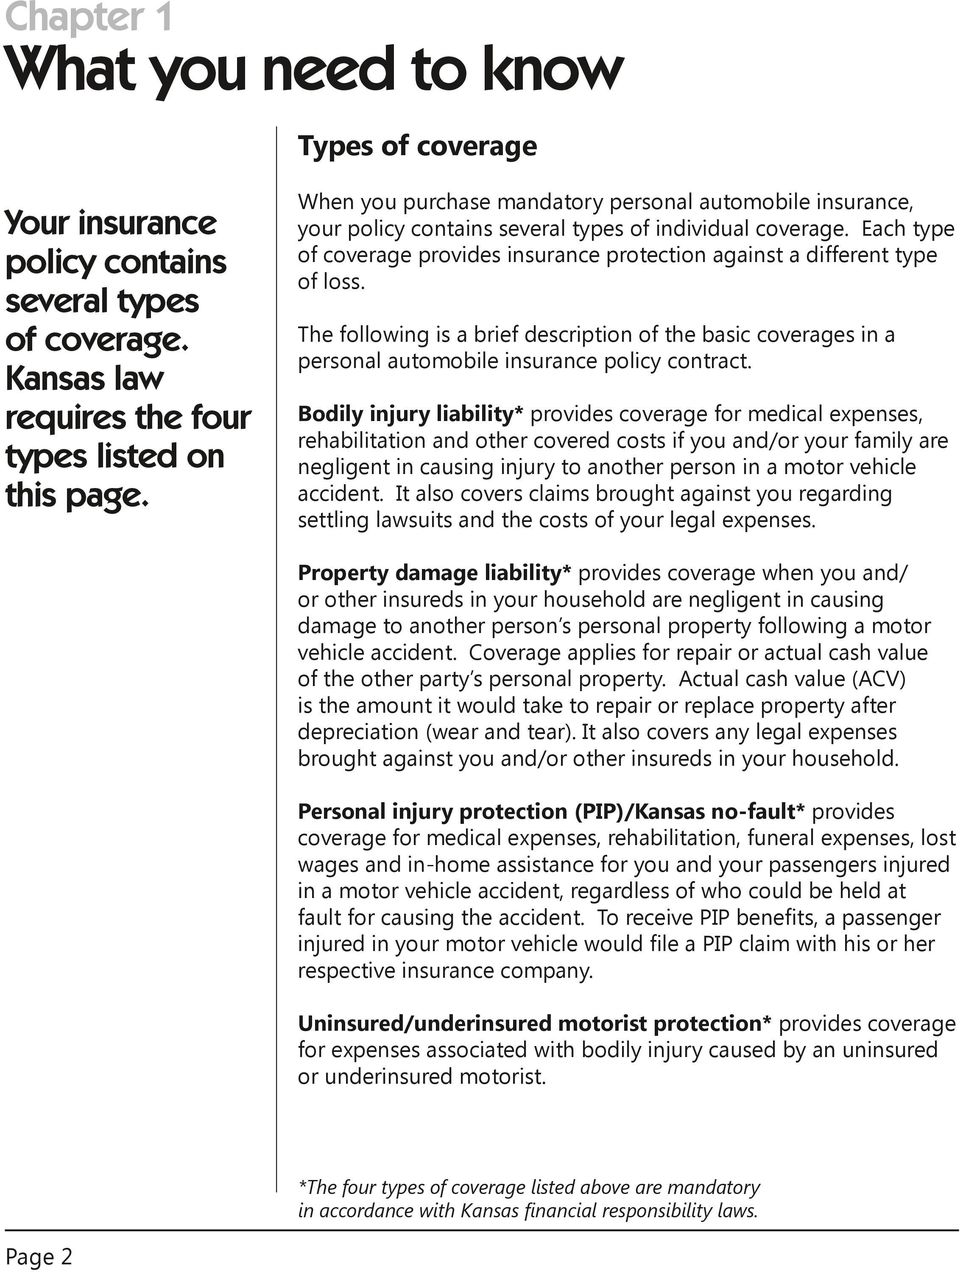 Each type of coverage provides insurance protection against a different type of loss. The following is a brief description of the basic coverages in a personal automobile insurance policy contract.